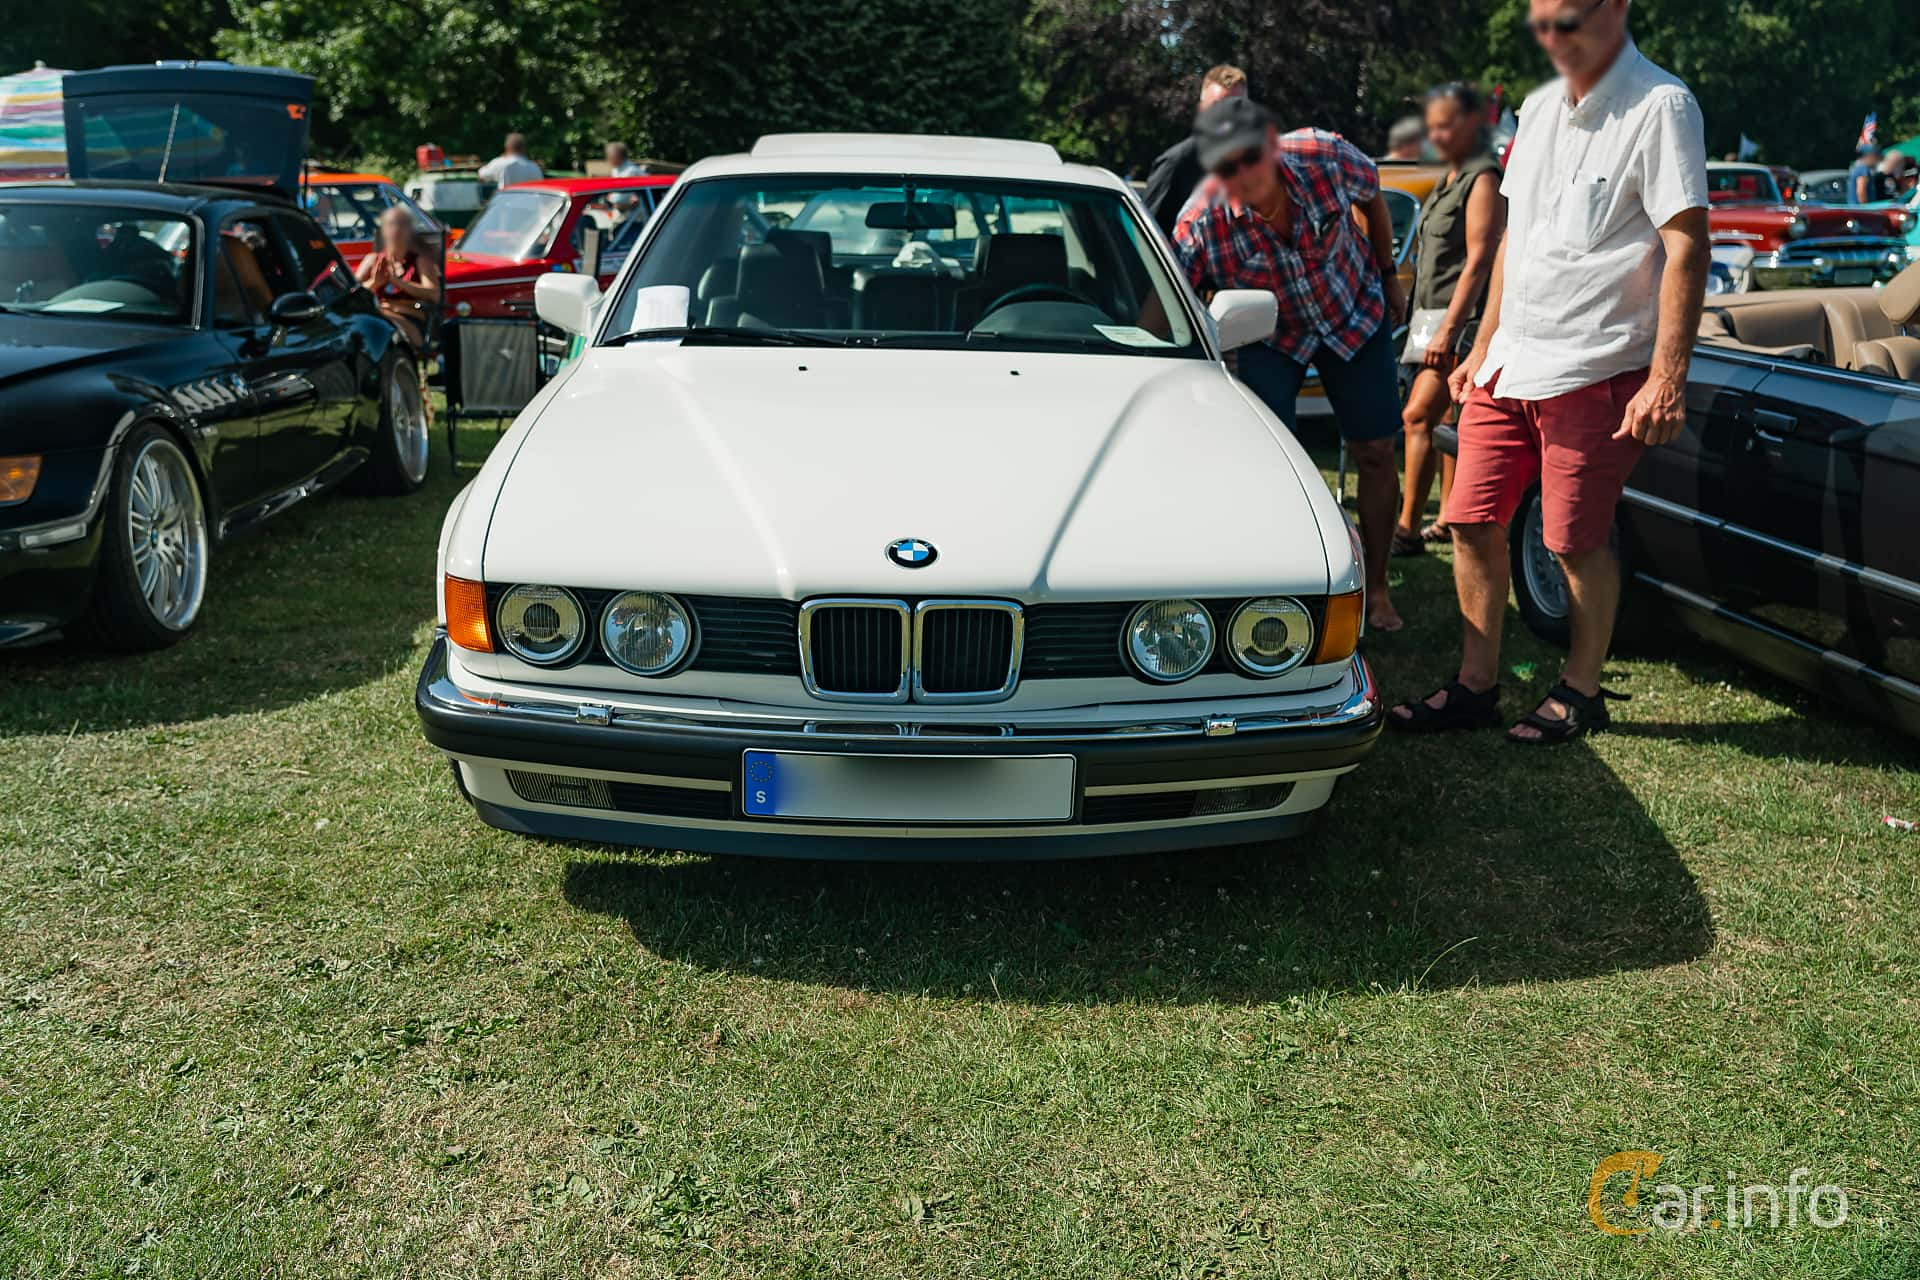 BMW 730i  Automatic, 188hp, 1989 at Ronneby Nostalgia Festival 2019